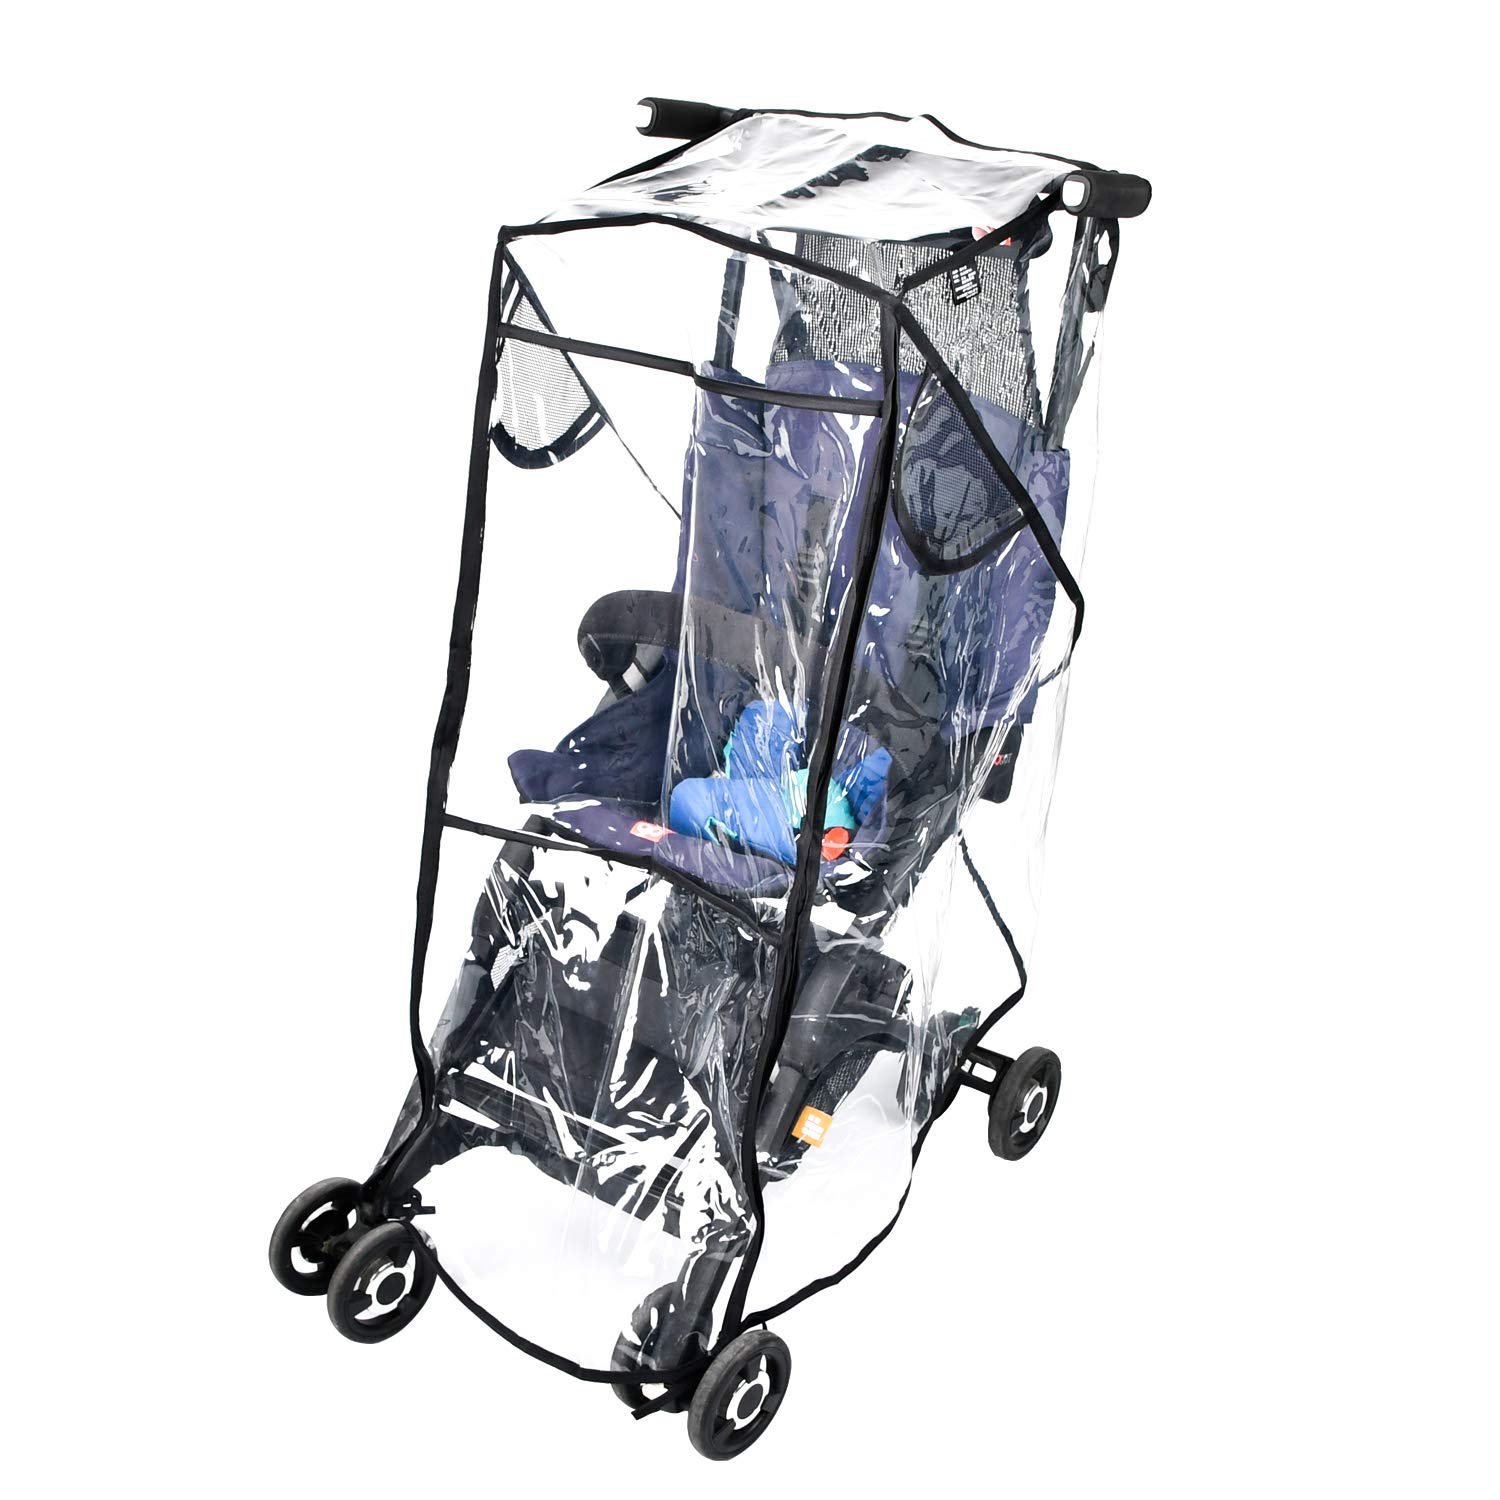 Stroller Rain Cover Stroller Weather Shield Universal Size, Waterproof, Water Resistant, Windproof, See Thru, Ventilation, Protection, Shade, Umbrella, Pram, Vinyl, Clear, Plastic by IUMÉ